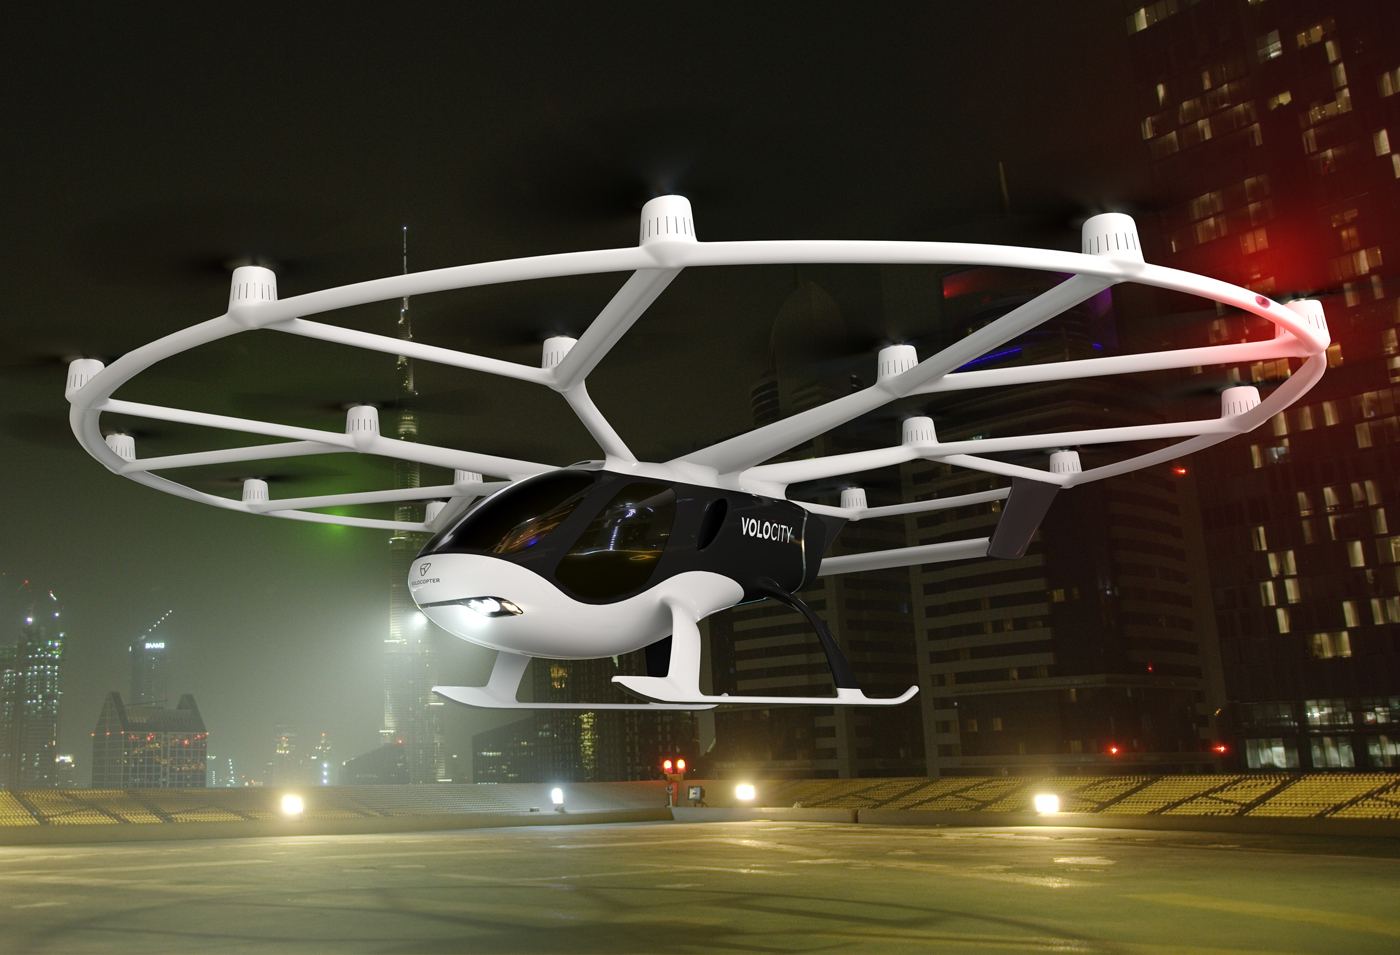 FAA Accepts Volocopter Certification Approach